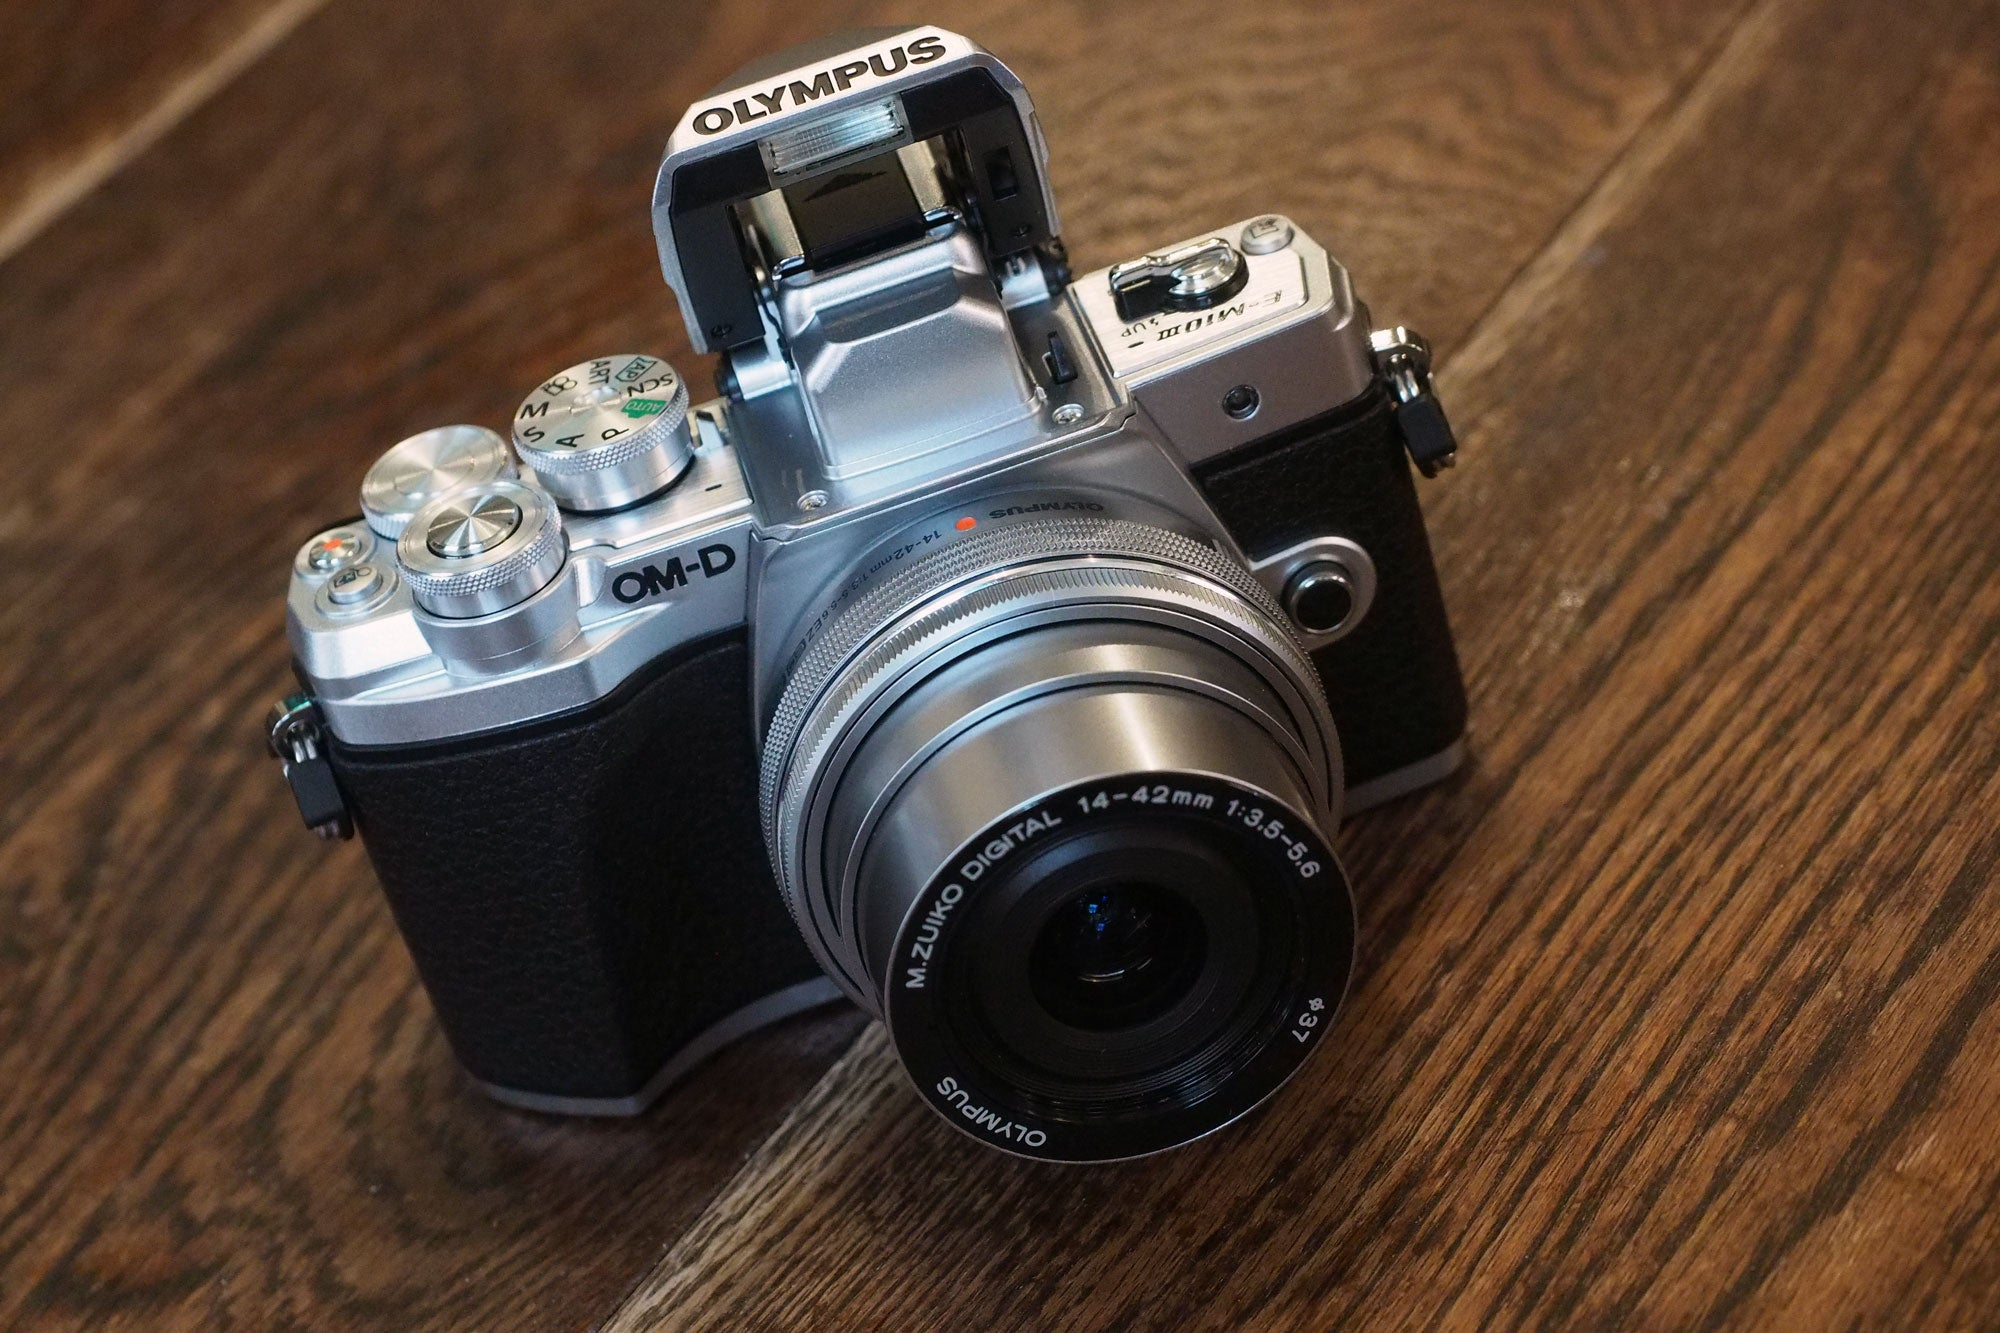 Image result for Olympus OM-D E-M10 Mark III